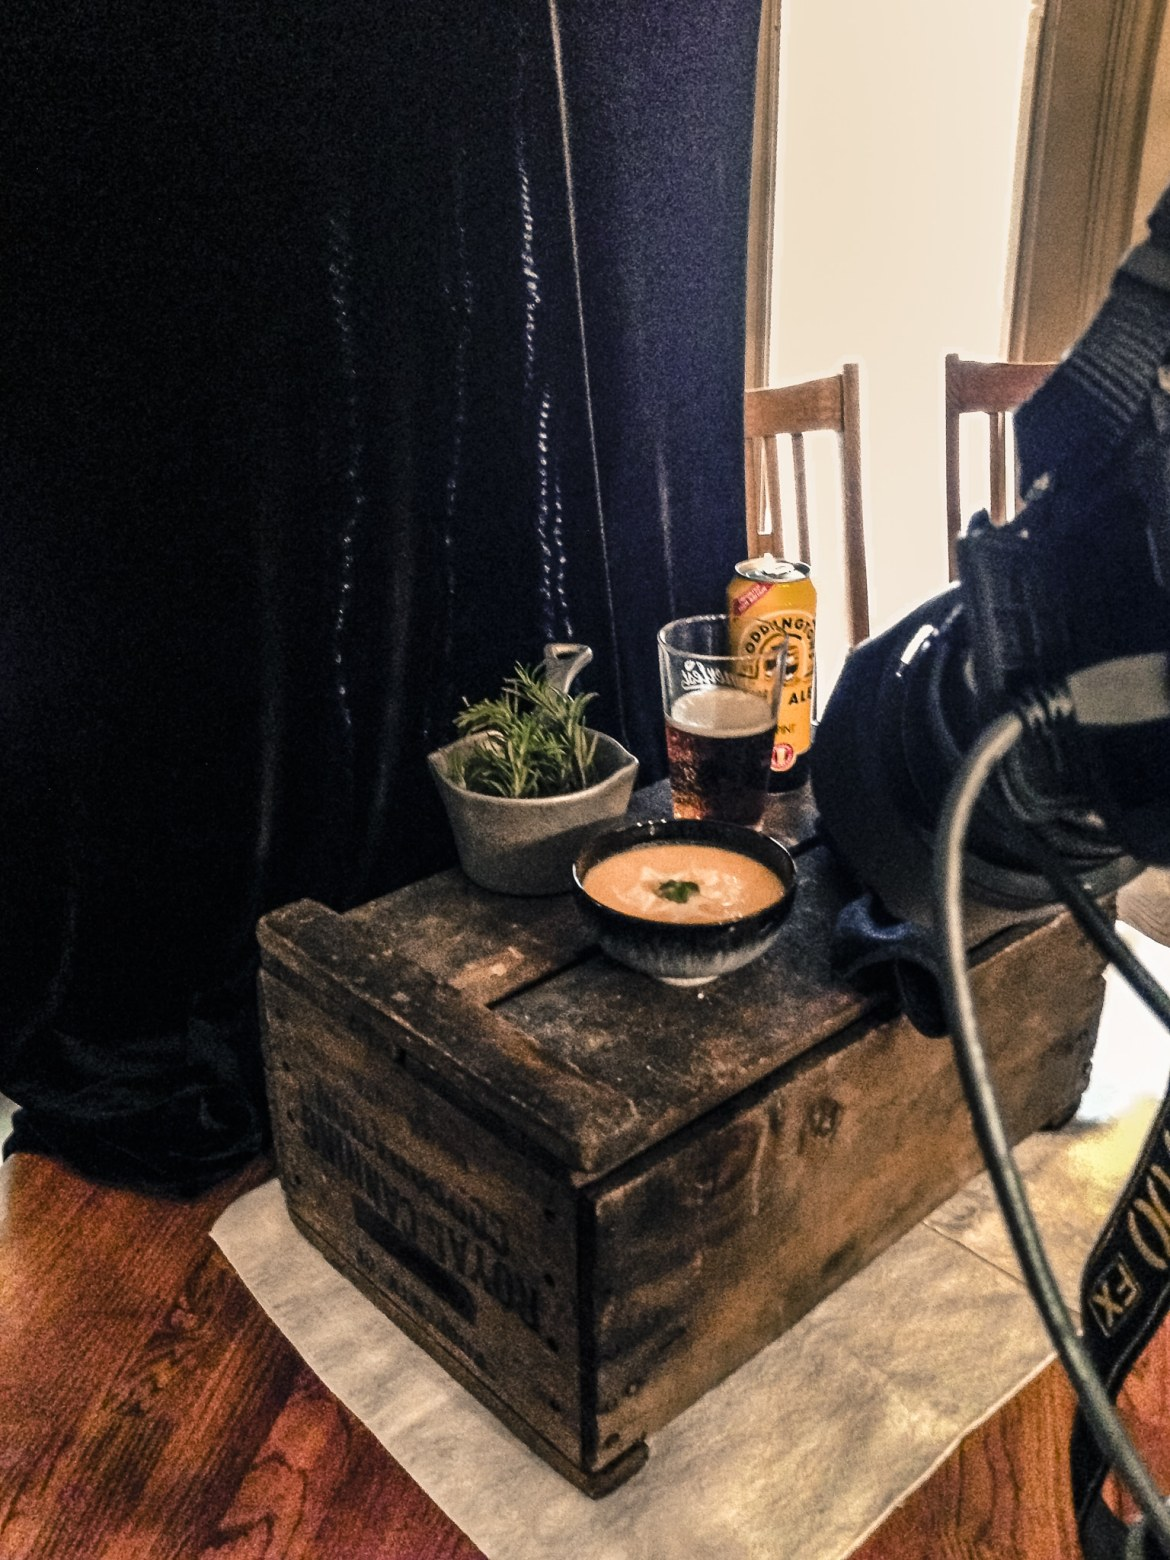 Food photography behind-the-scenes.